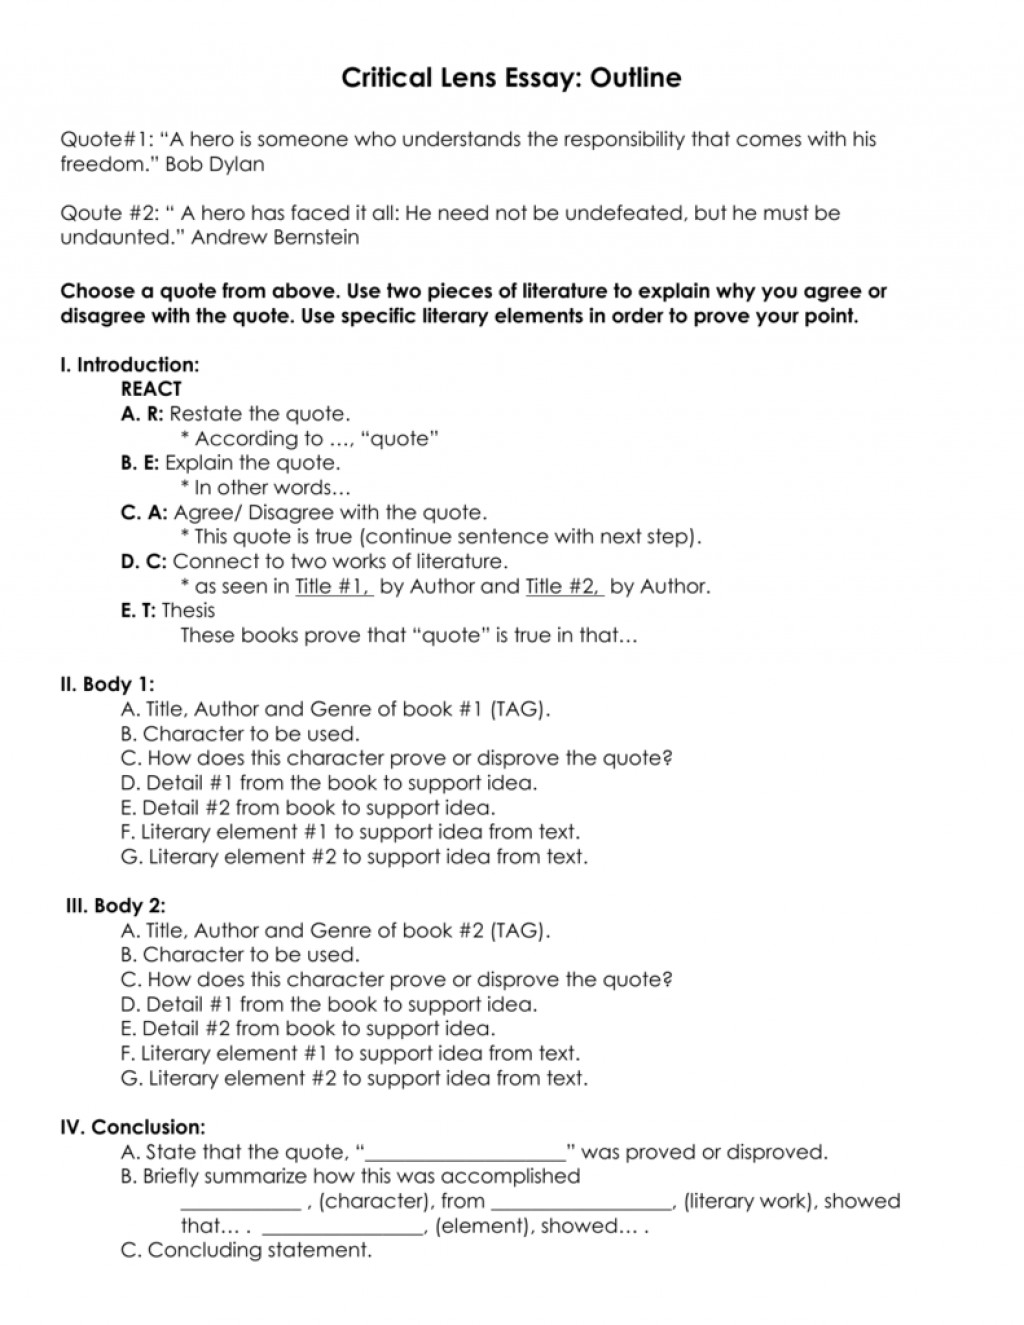 011 Critical Lens Essay Example 008514753 1 Best Sample Template English Regents Large